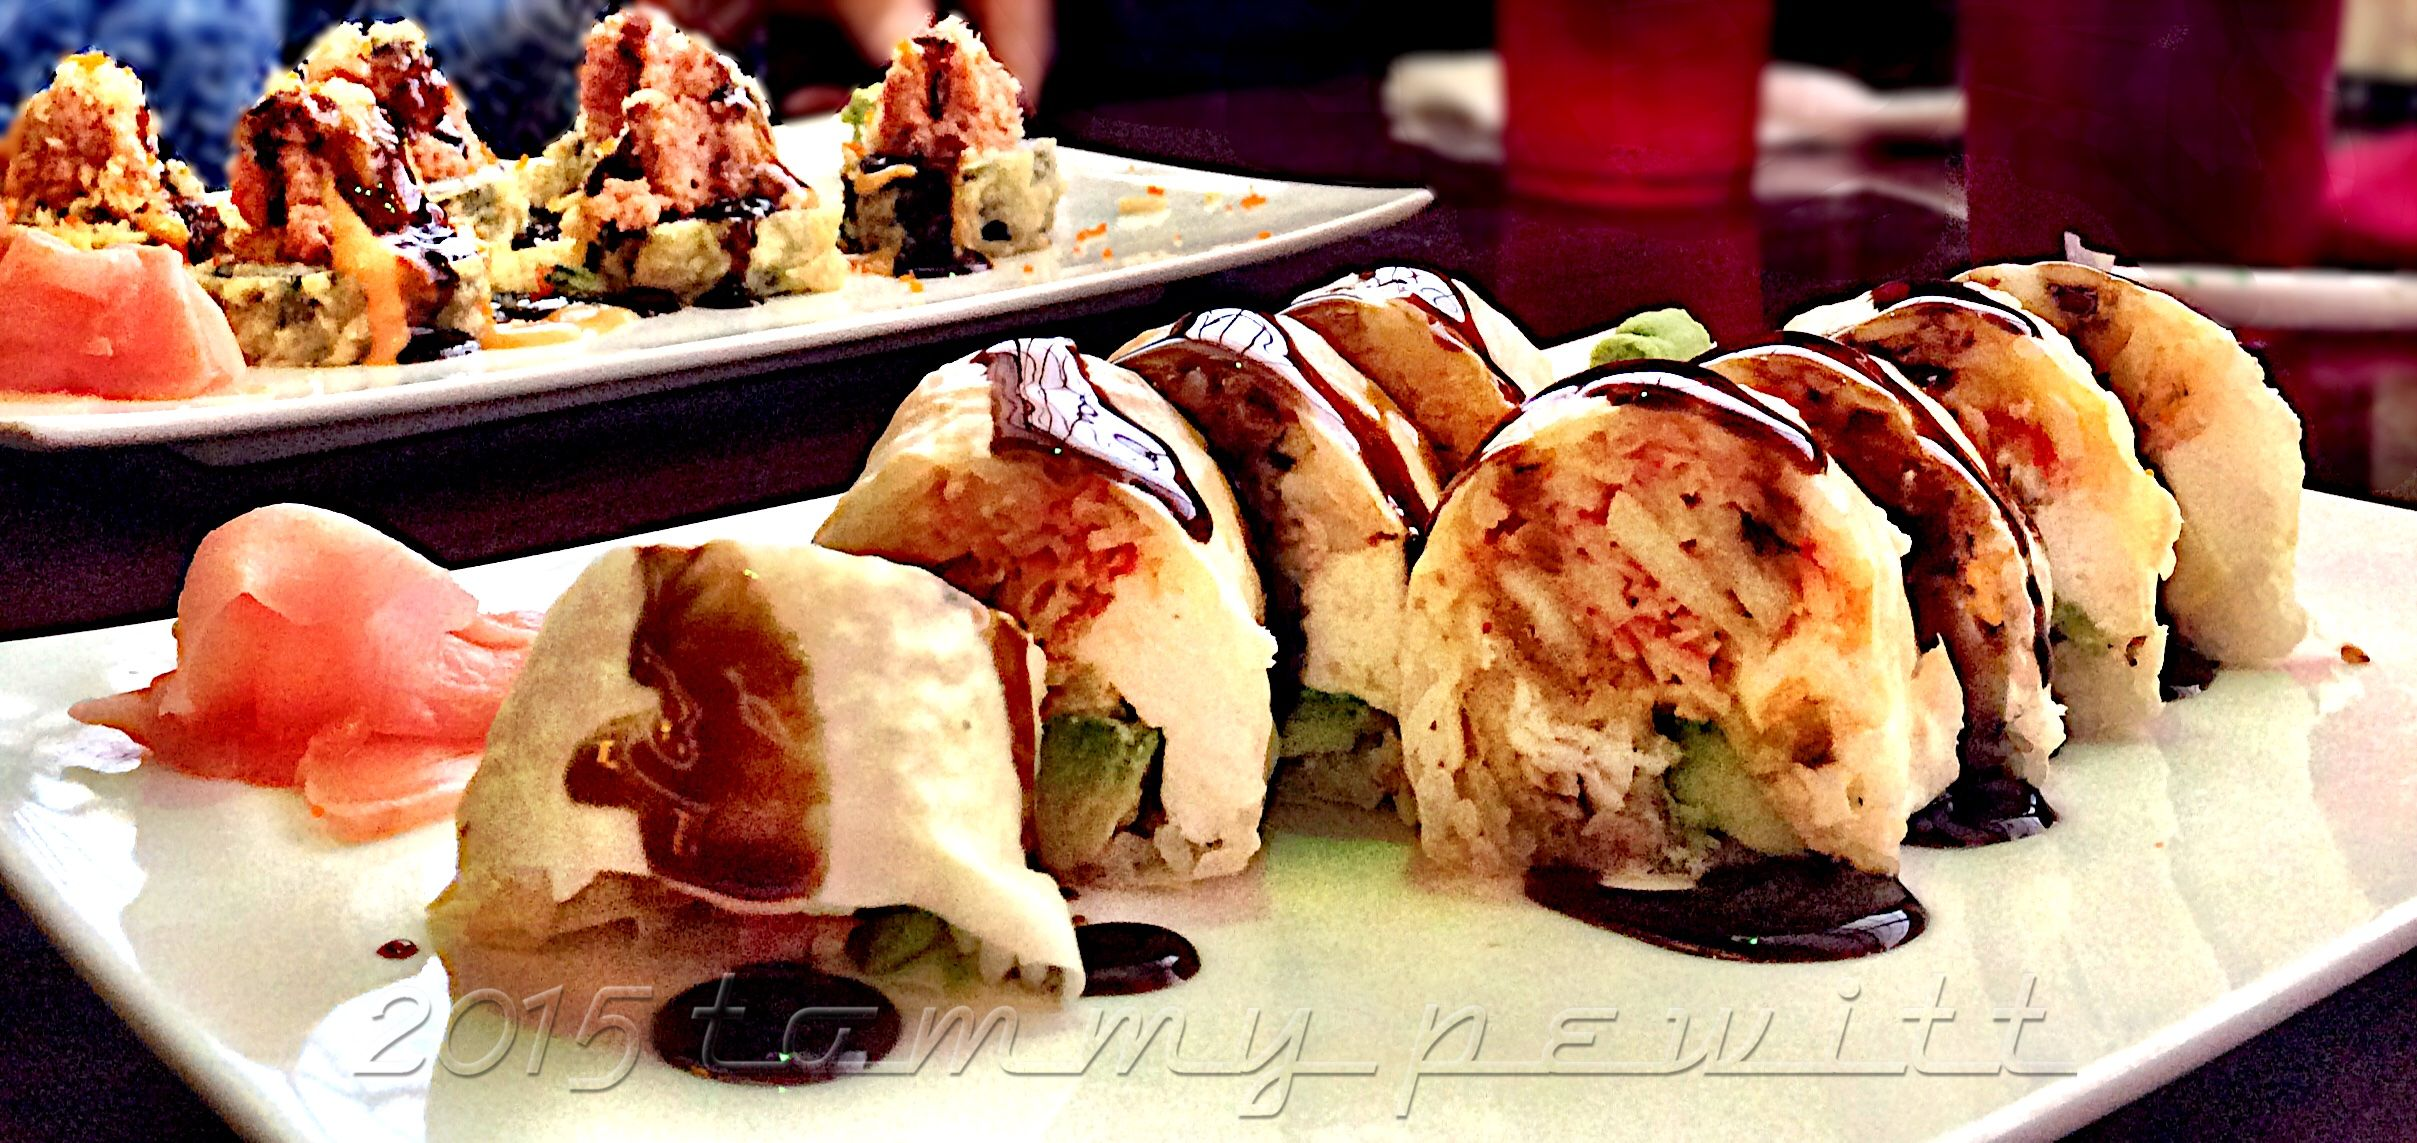 Akoya Is An Asian Restaurant It Located In 2420 Highway 46 S Son Tn Please Call 6153758389 To Enjoy Food